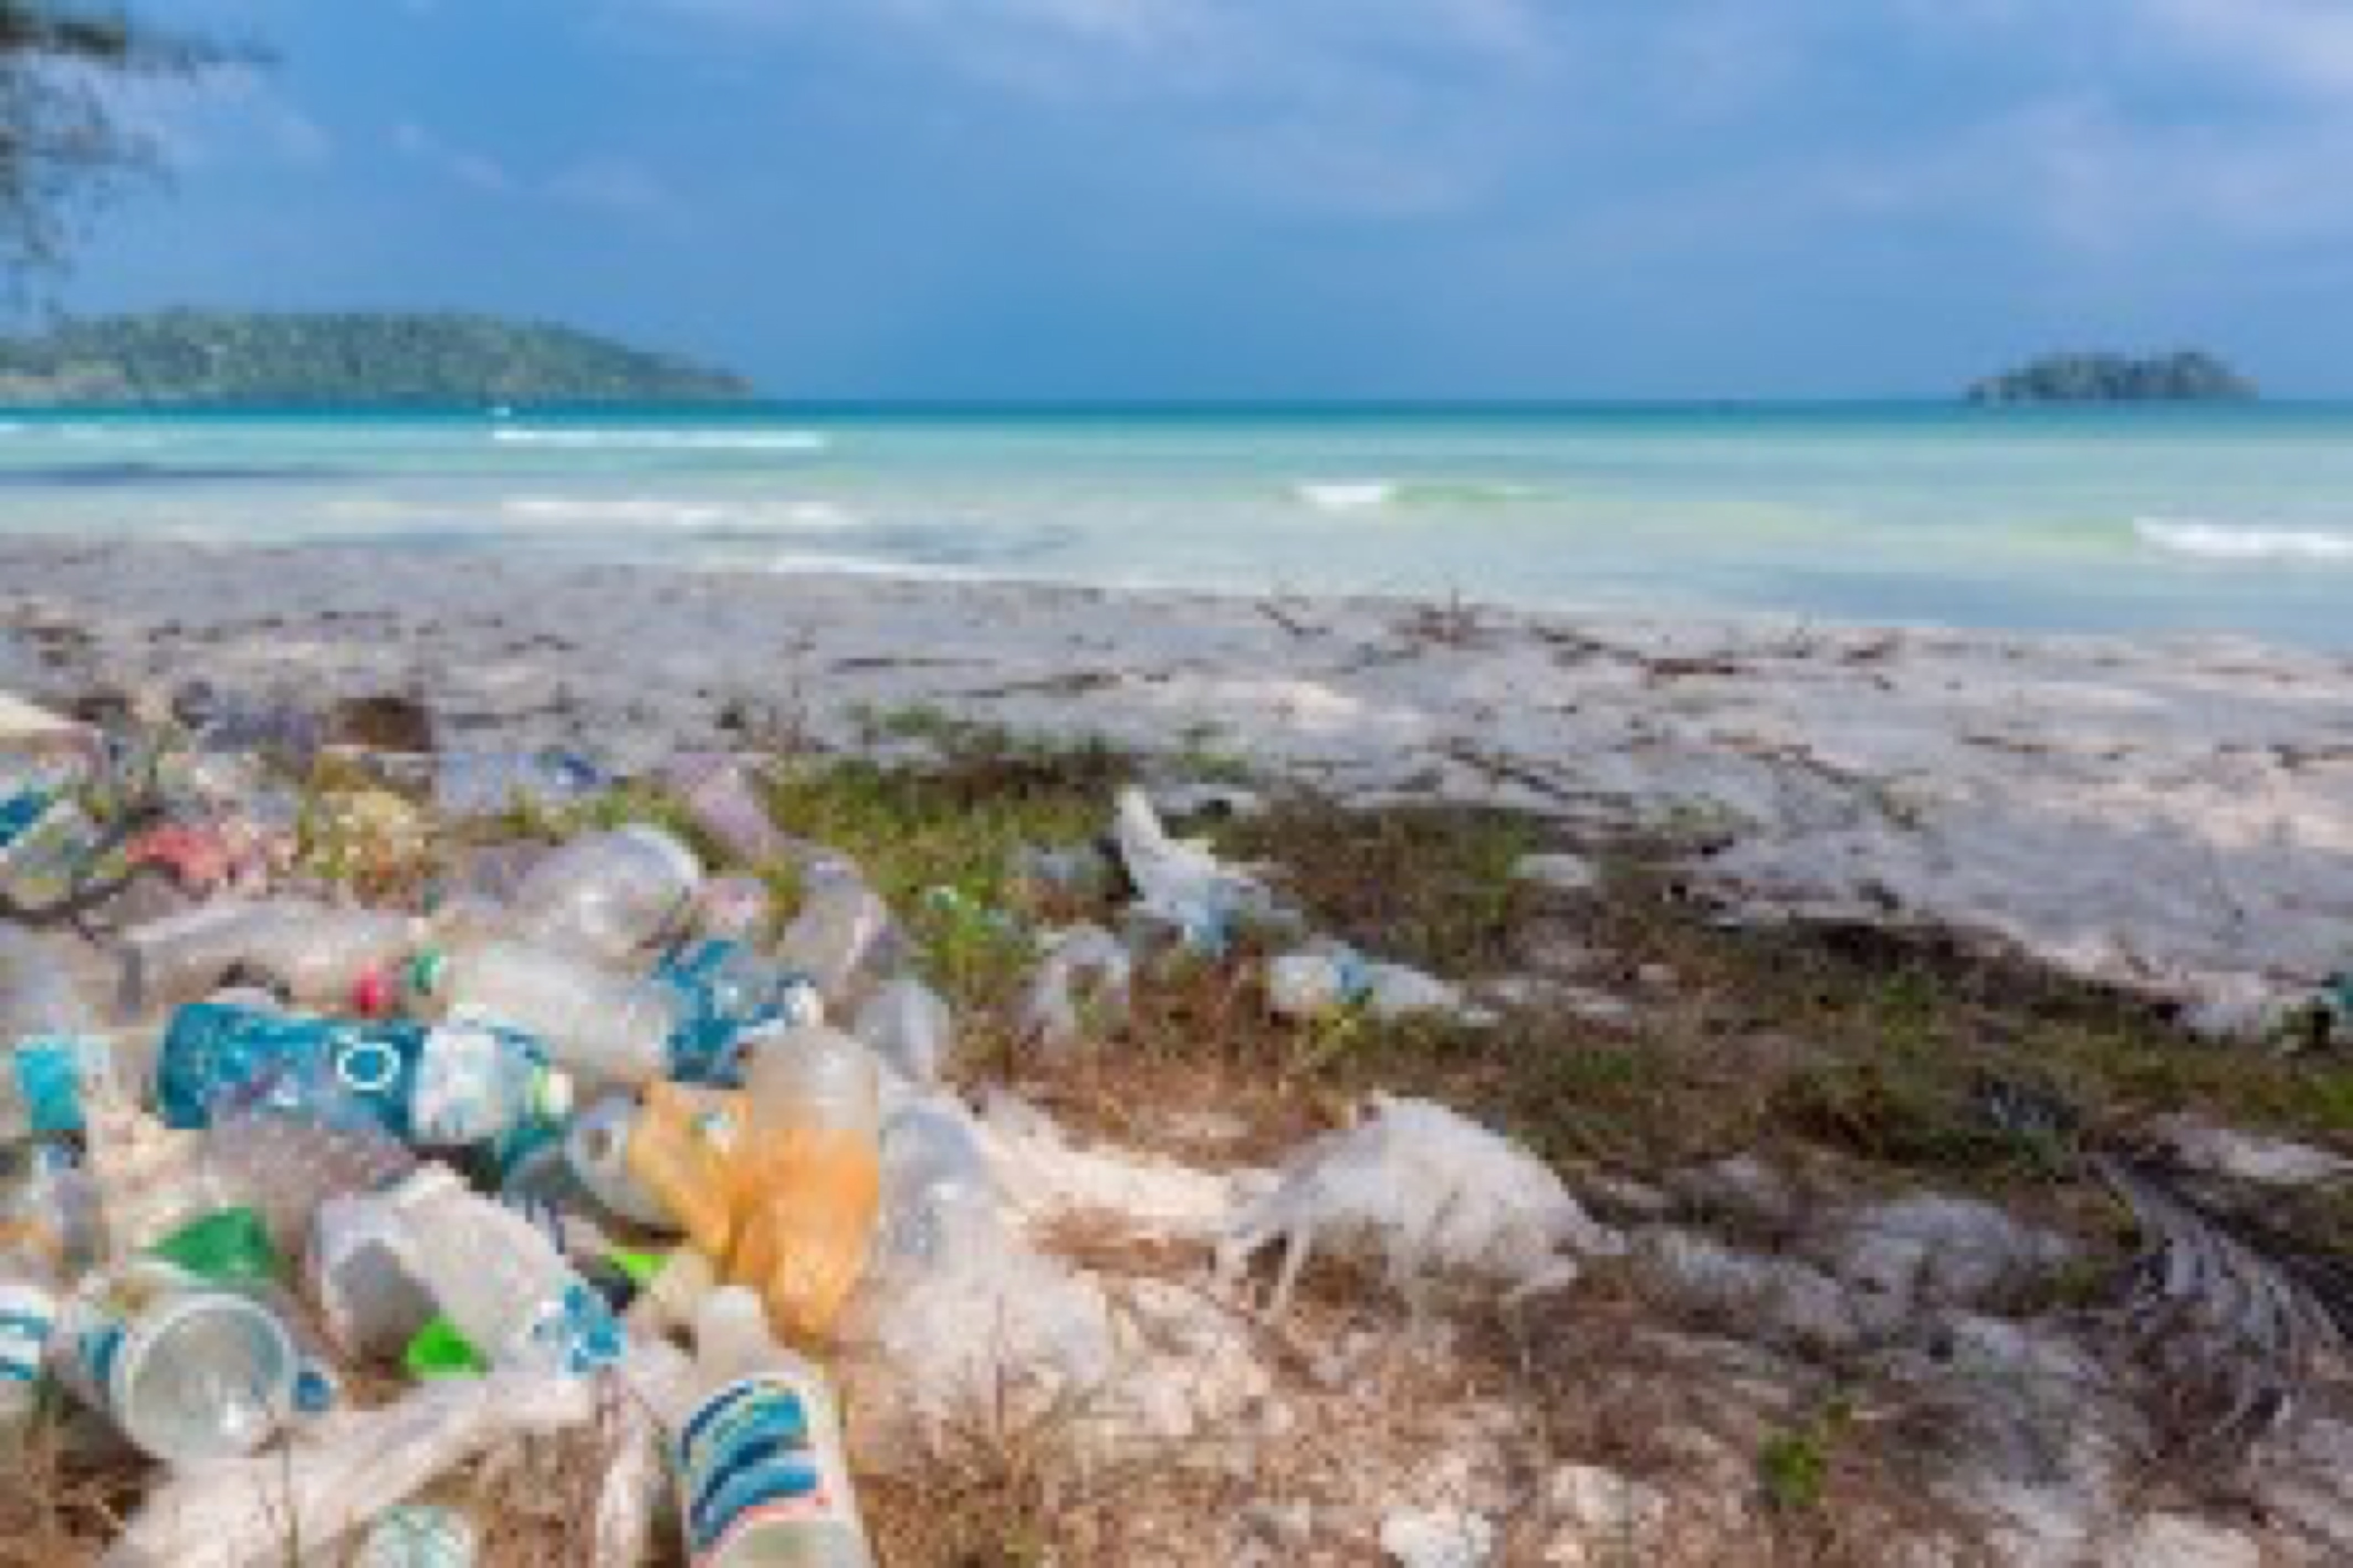 Koh Rong, Cambodia - January 24, 2016: Garbage and plastic bottles on a beach left by tourist at, Rong Island near Sihanoukvile. Anvironmental pollution concept picture, Cambodia. South East Asia 2016